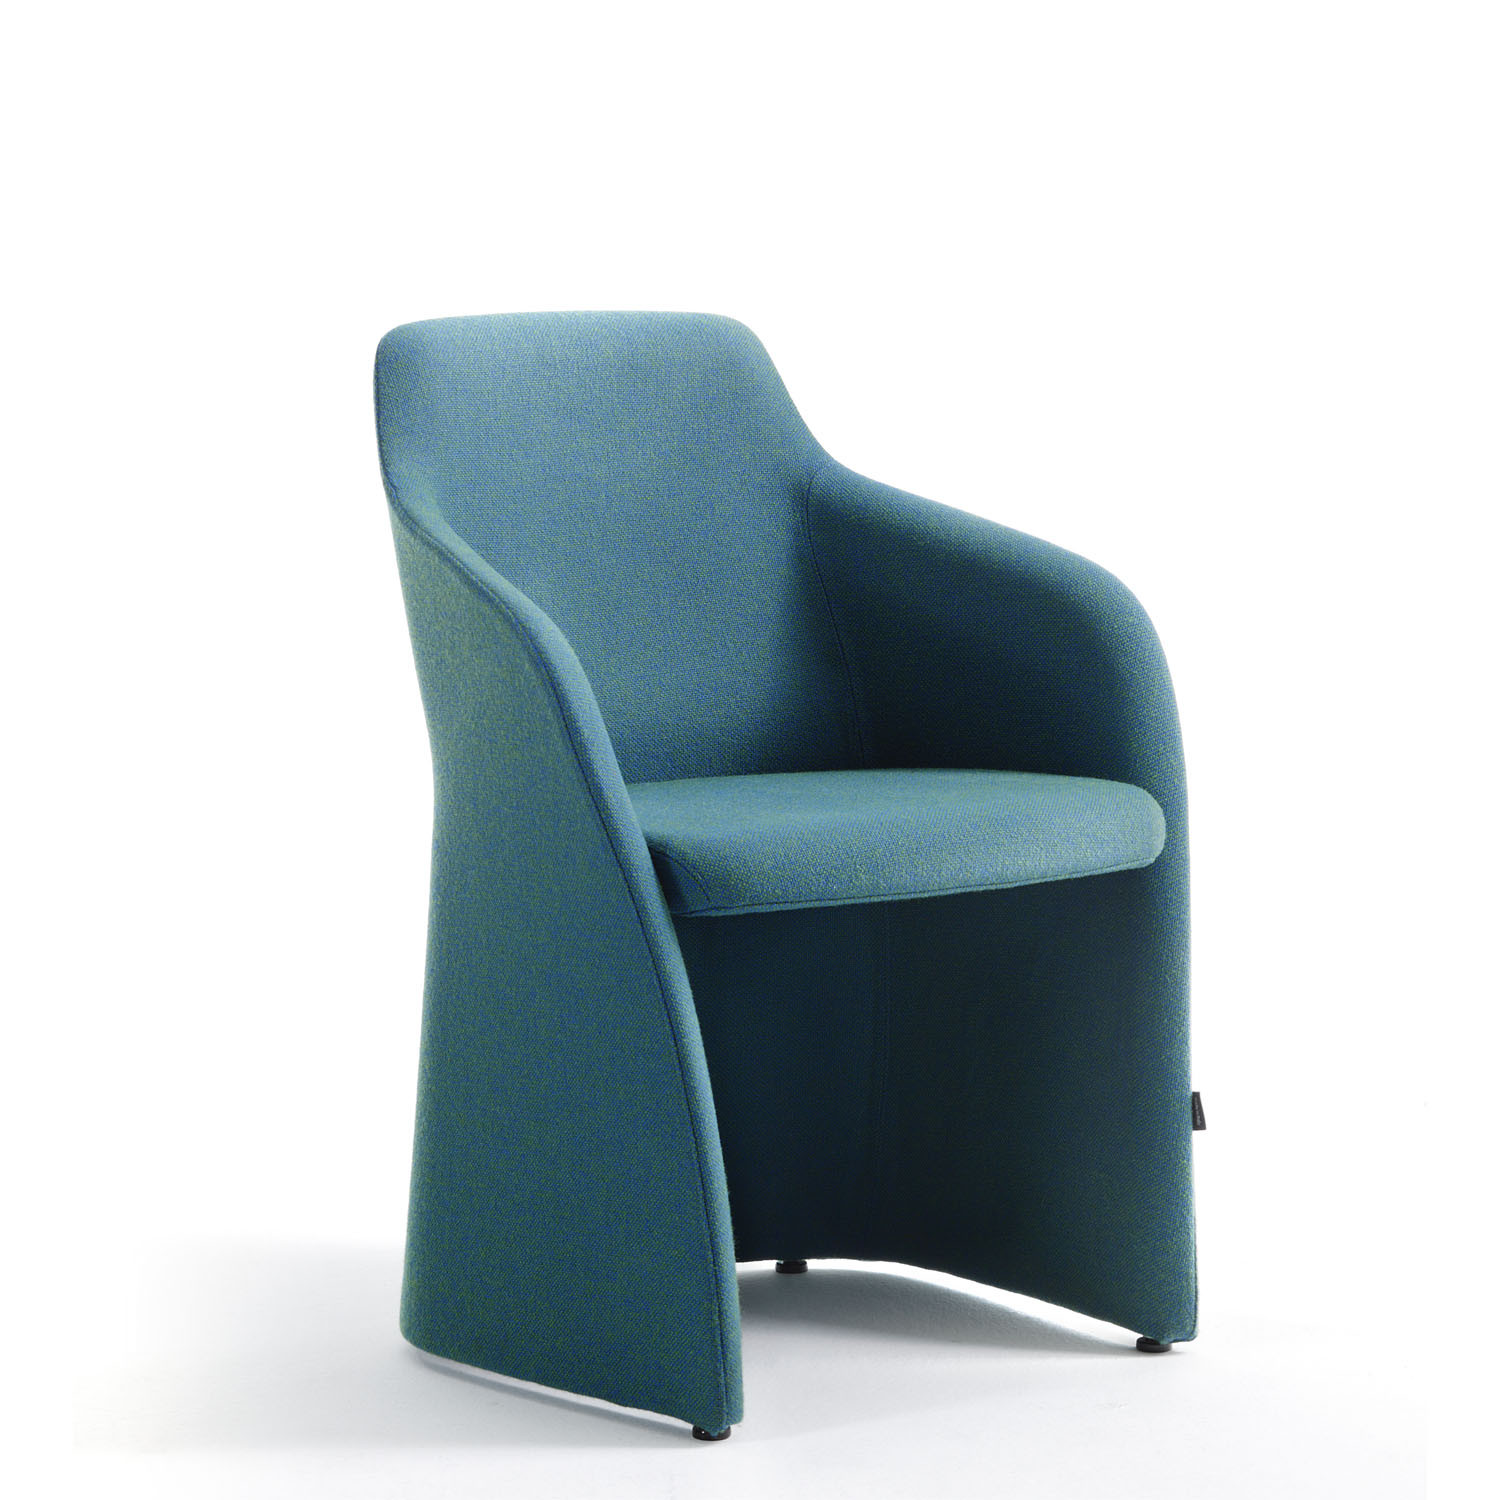 Captain Tub Chair | Baldanzi & Novelli Seating | Apres Furniture